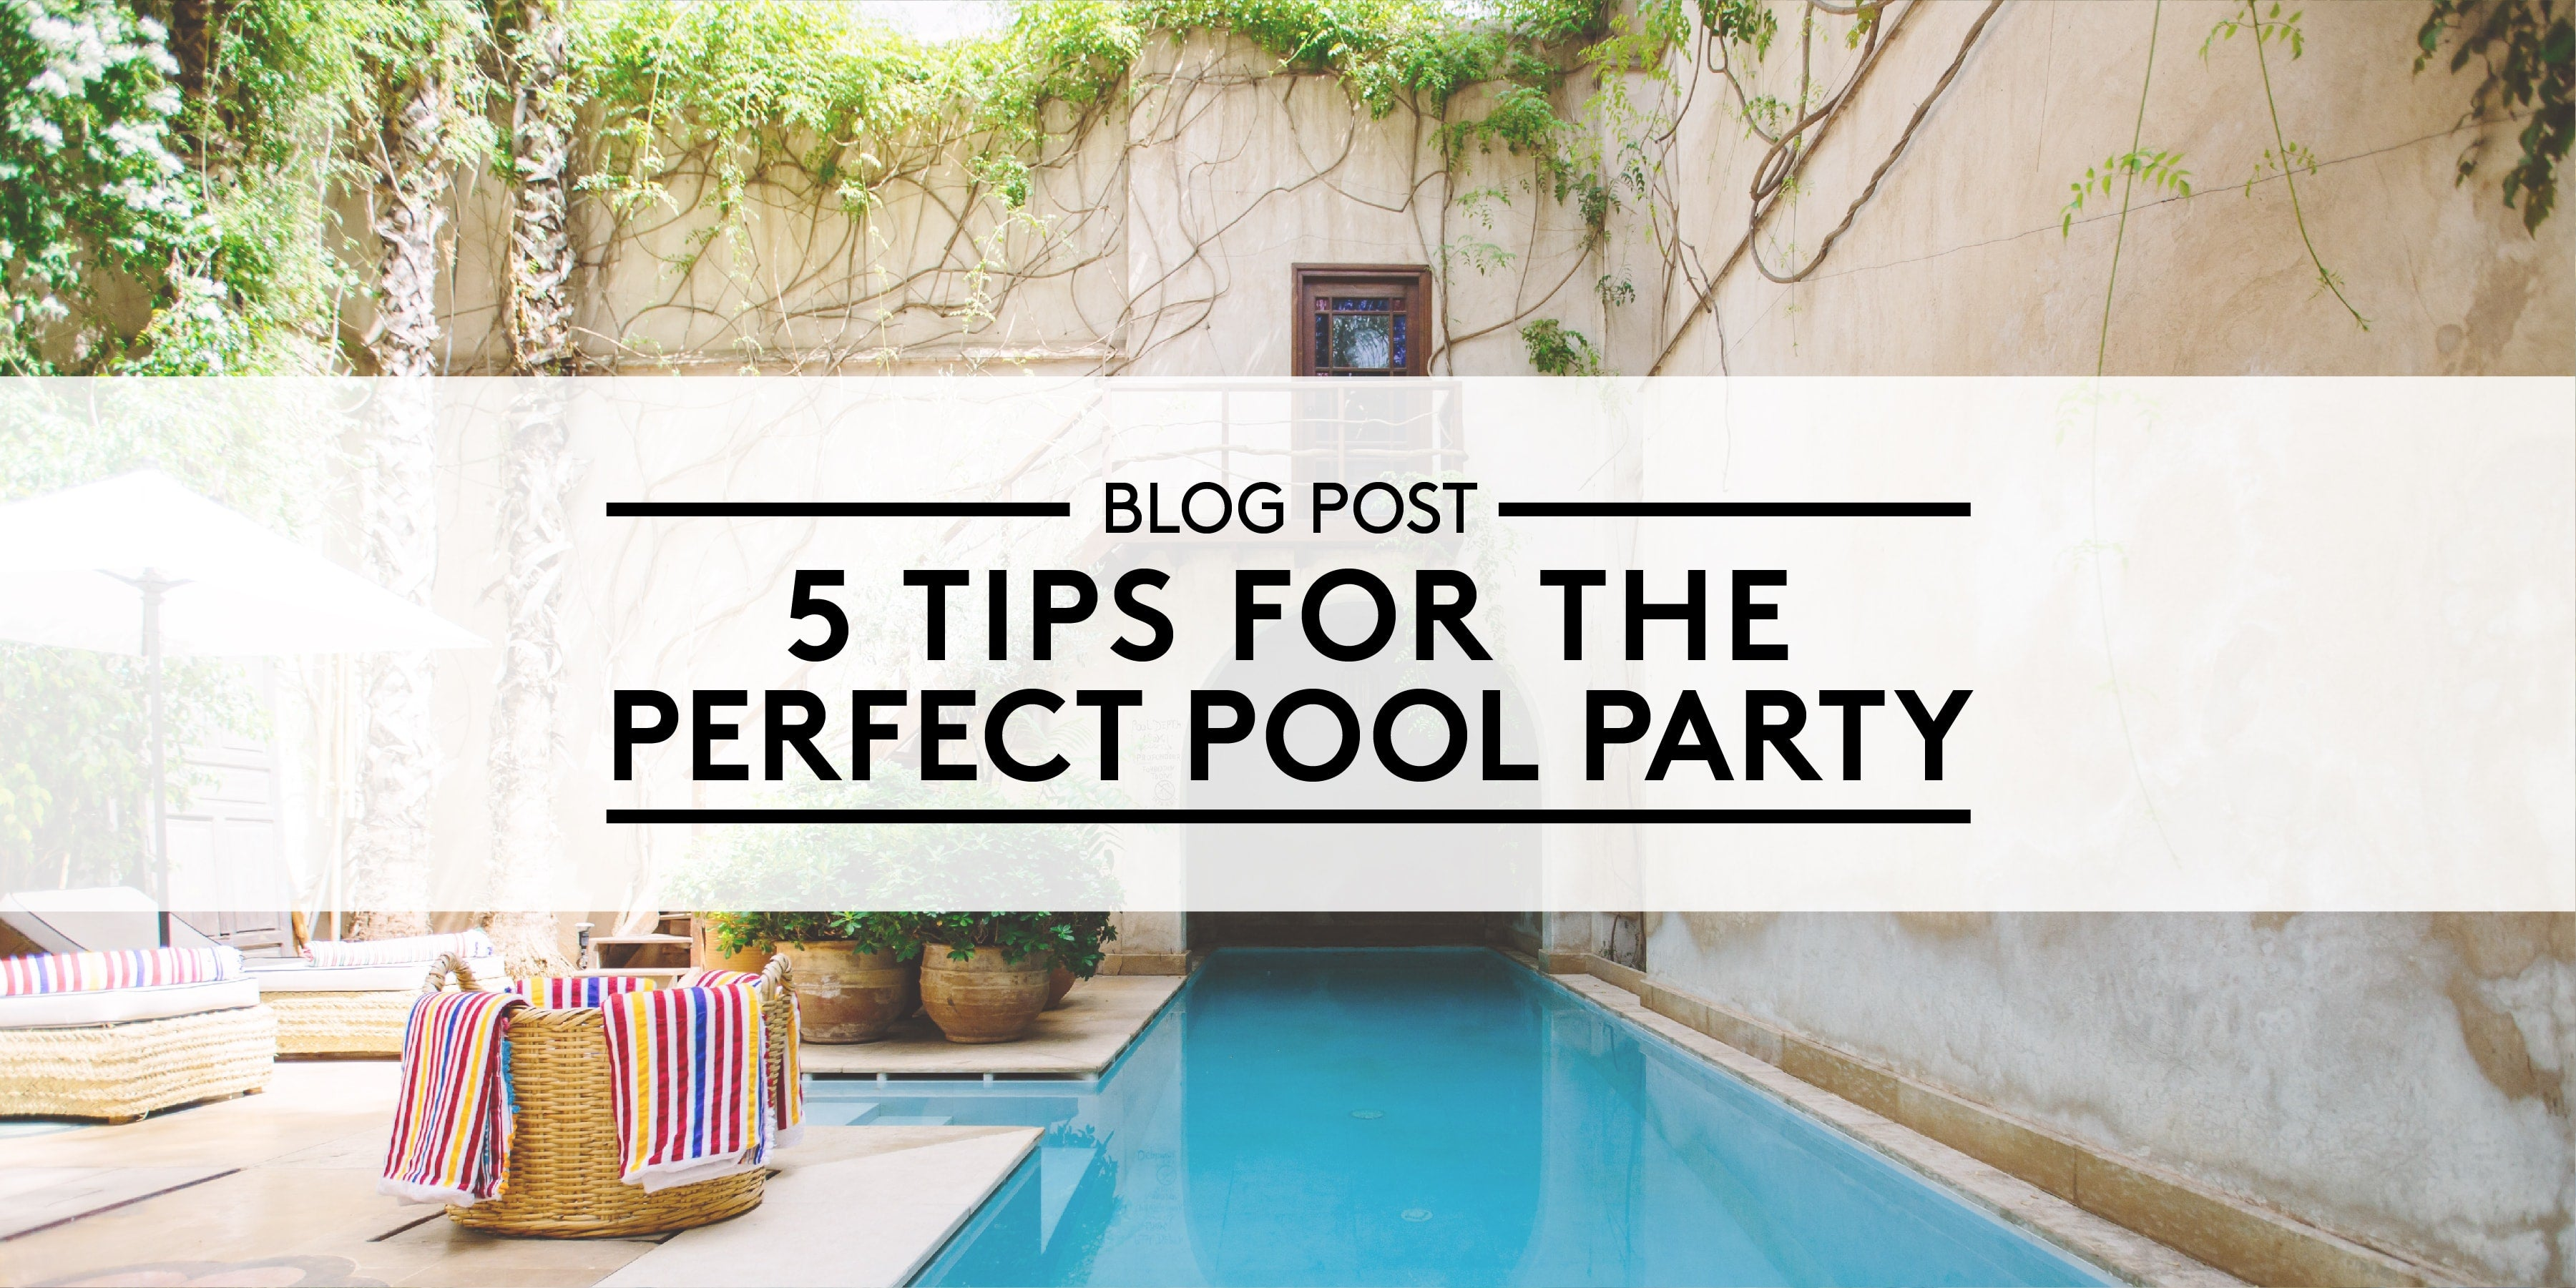 5 Tips for the Perfect Pool Party